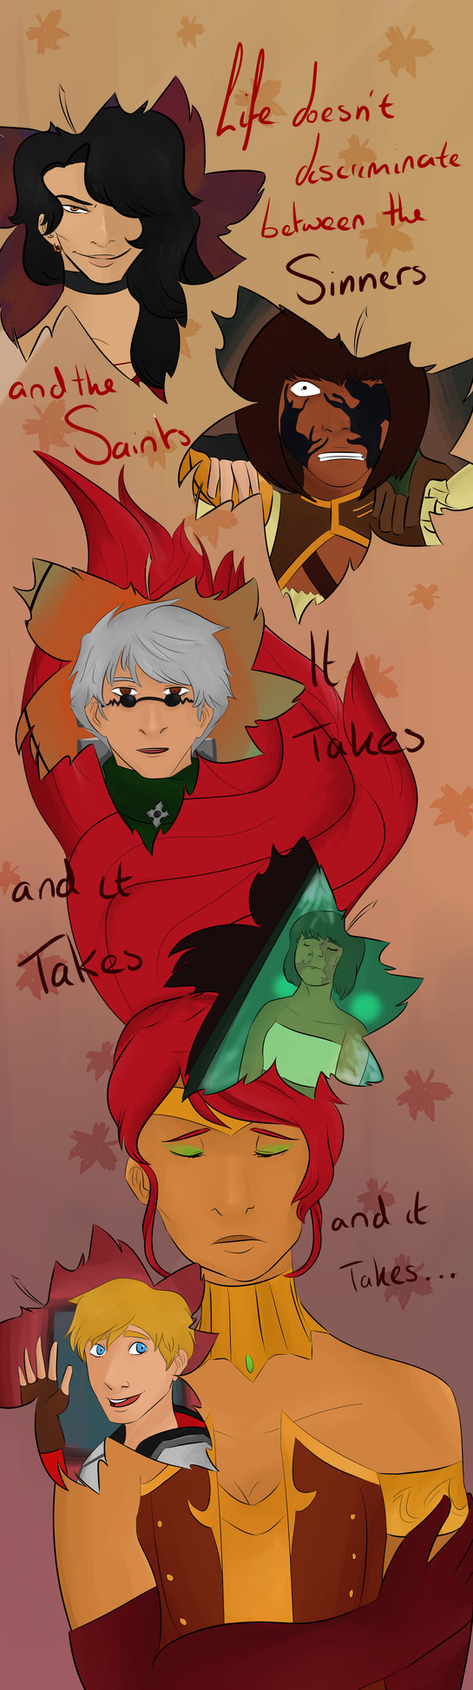 It Takes and it Takes by Natabob